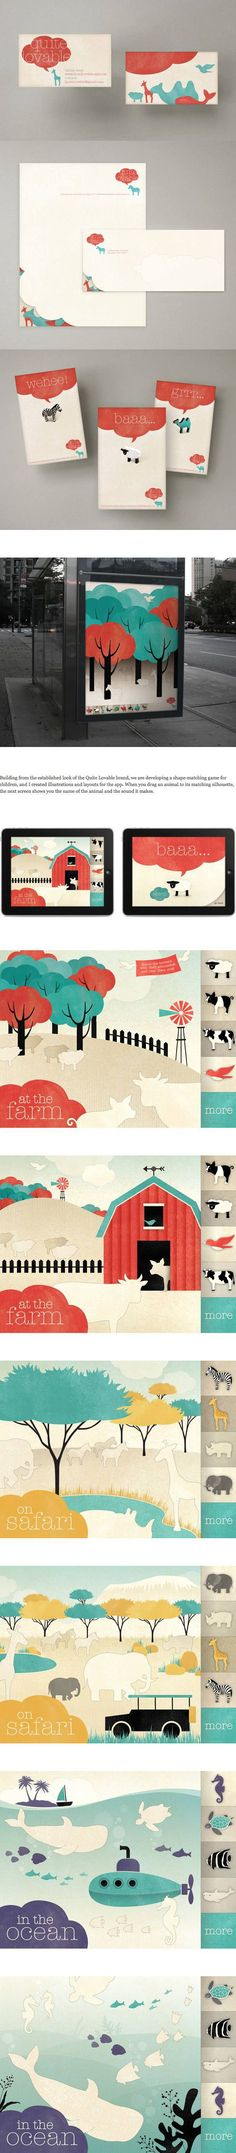 At the farm. Let's all go down to the farm #identity #packaging #branding